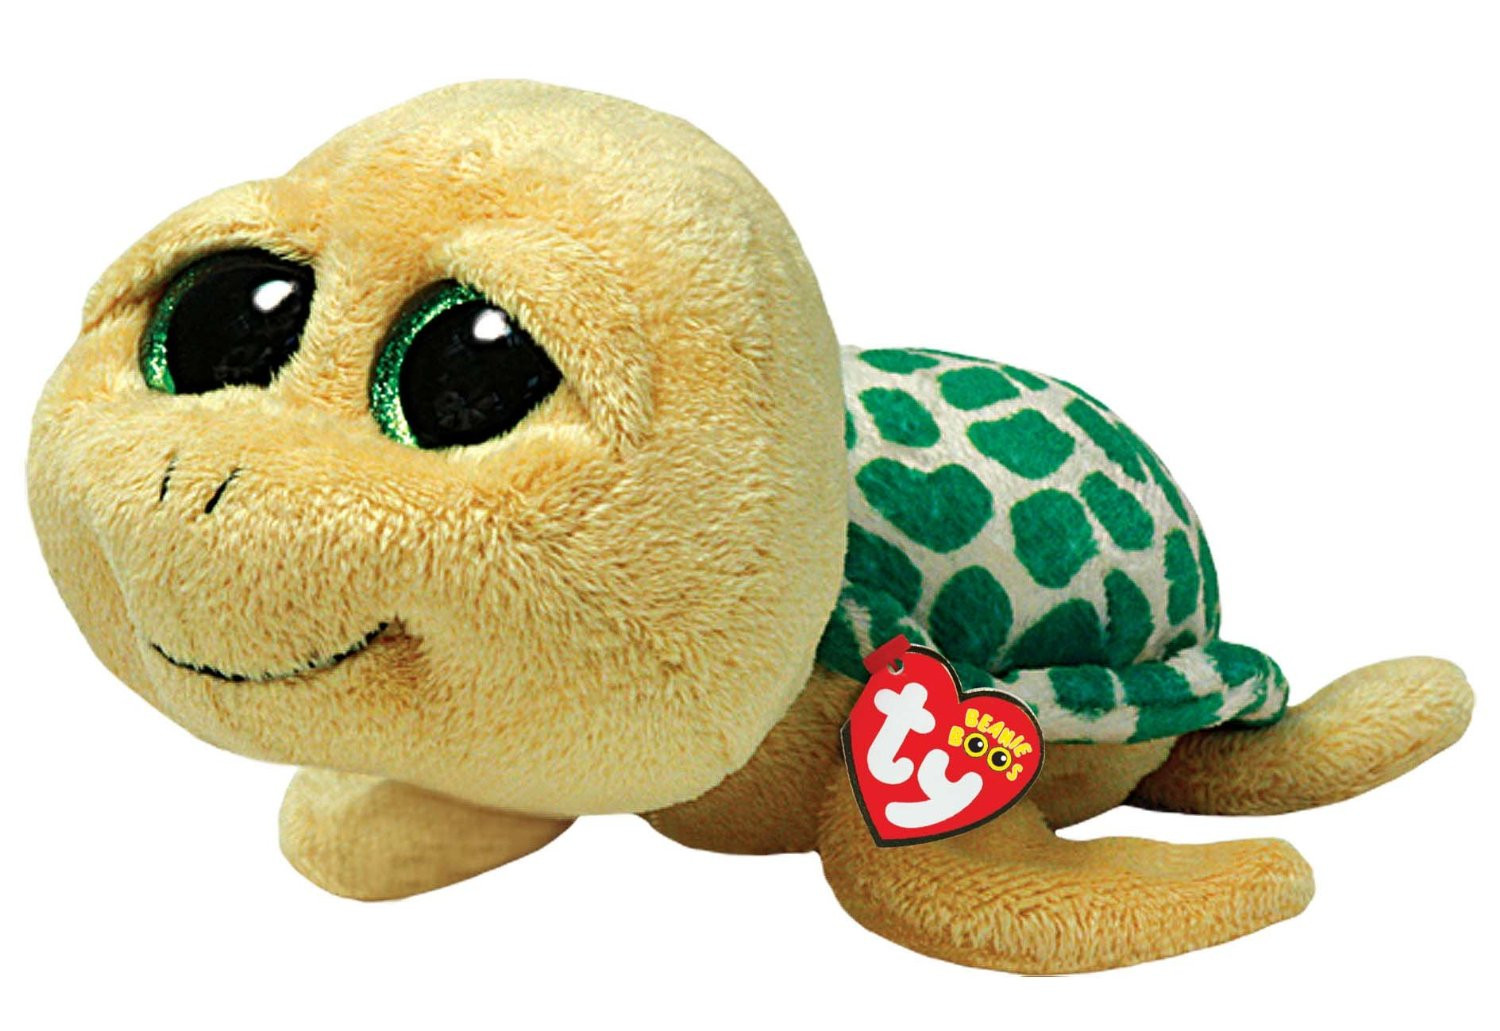 Beanie Boos Pokey the Turtle